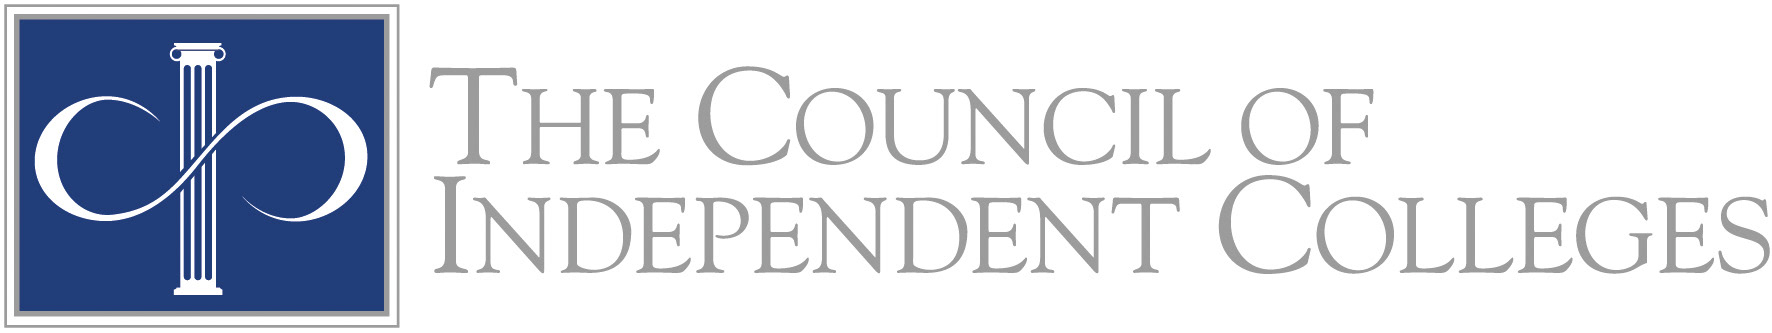 Council of Independent Colleges